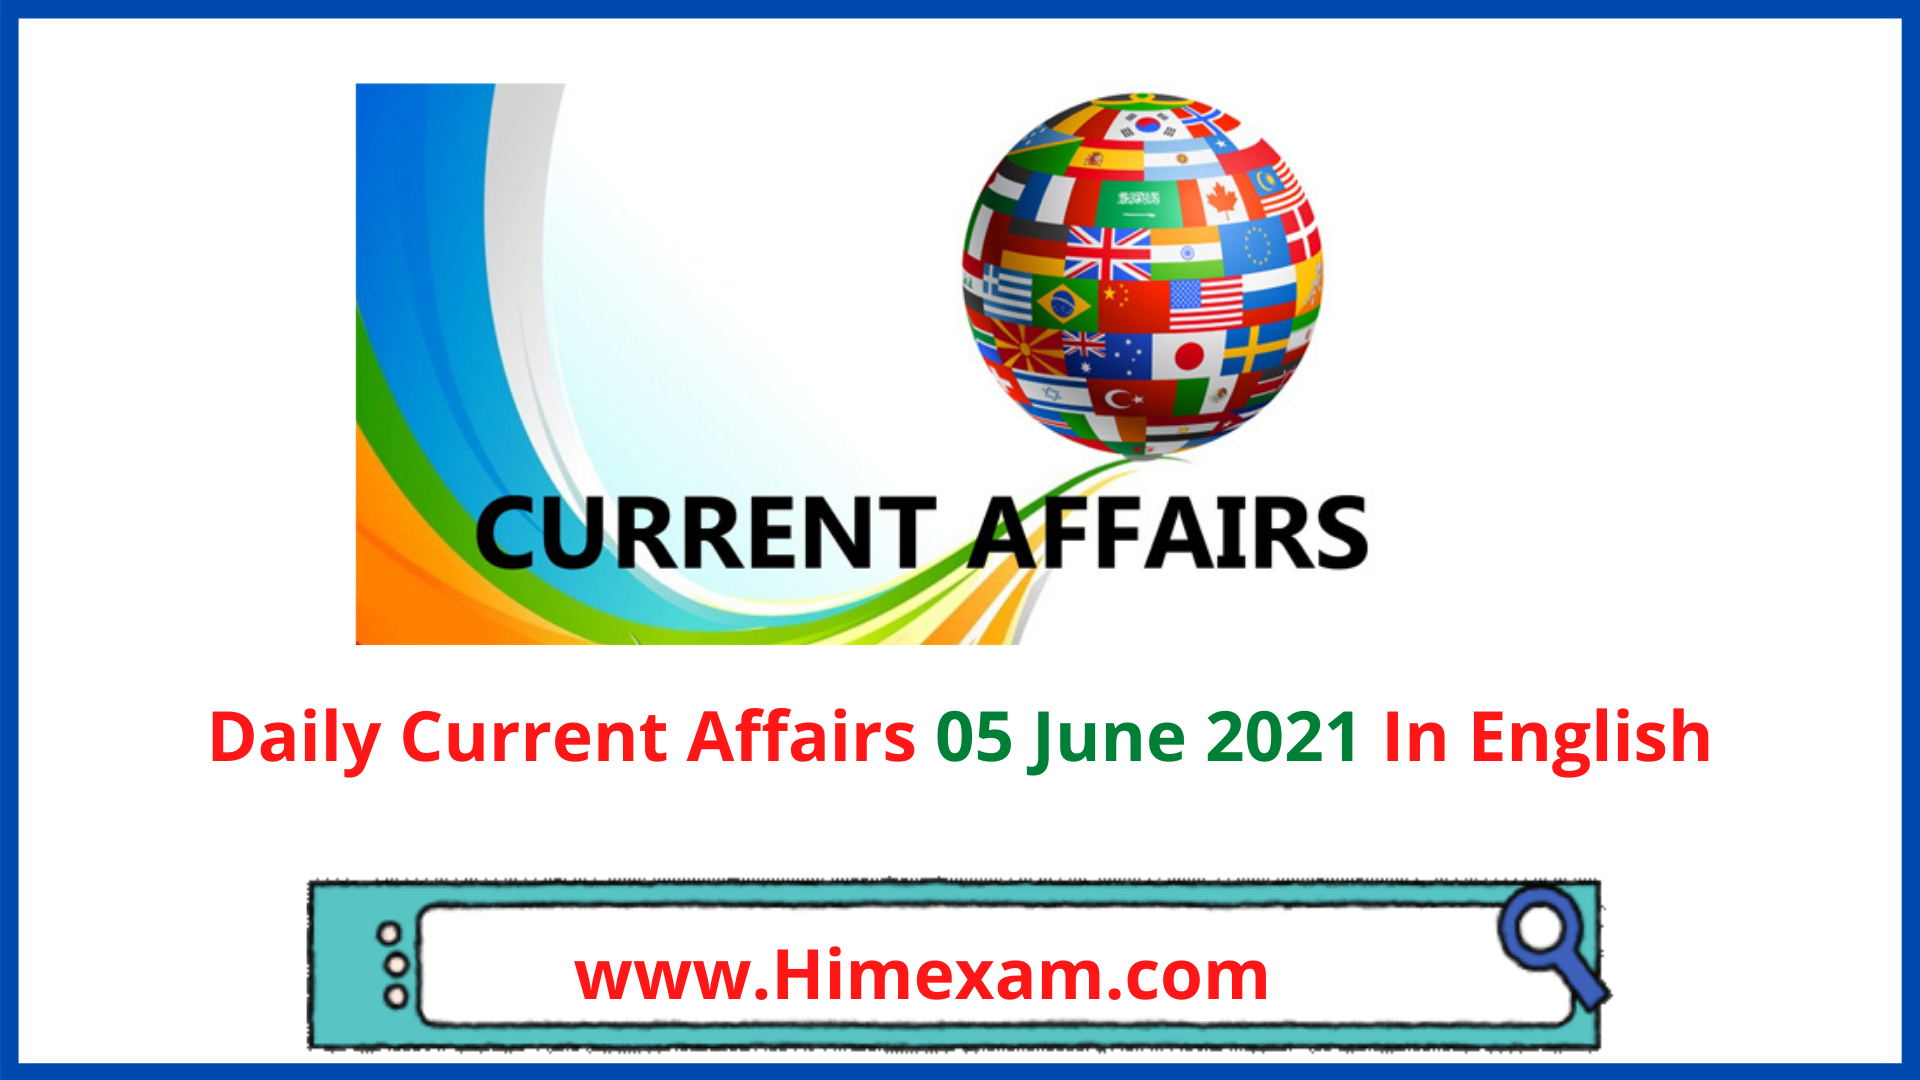 Daily Current Affairs 05 June 2021 In English